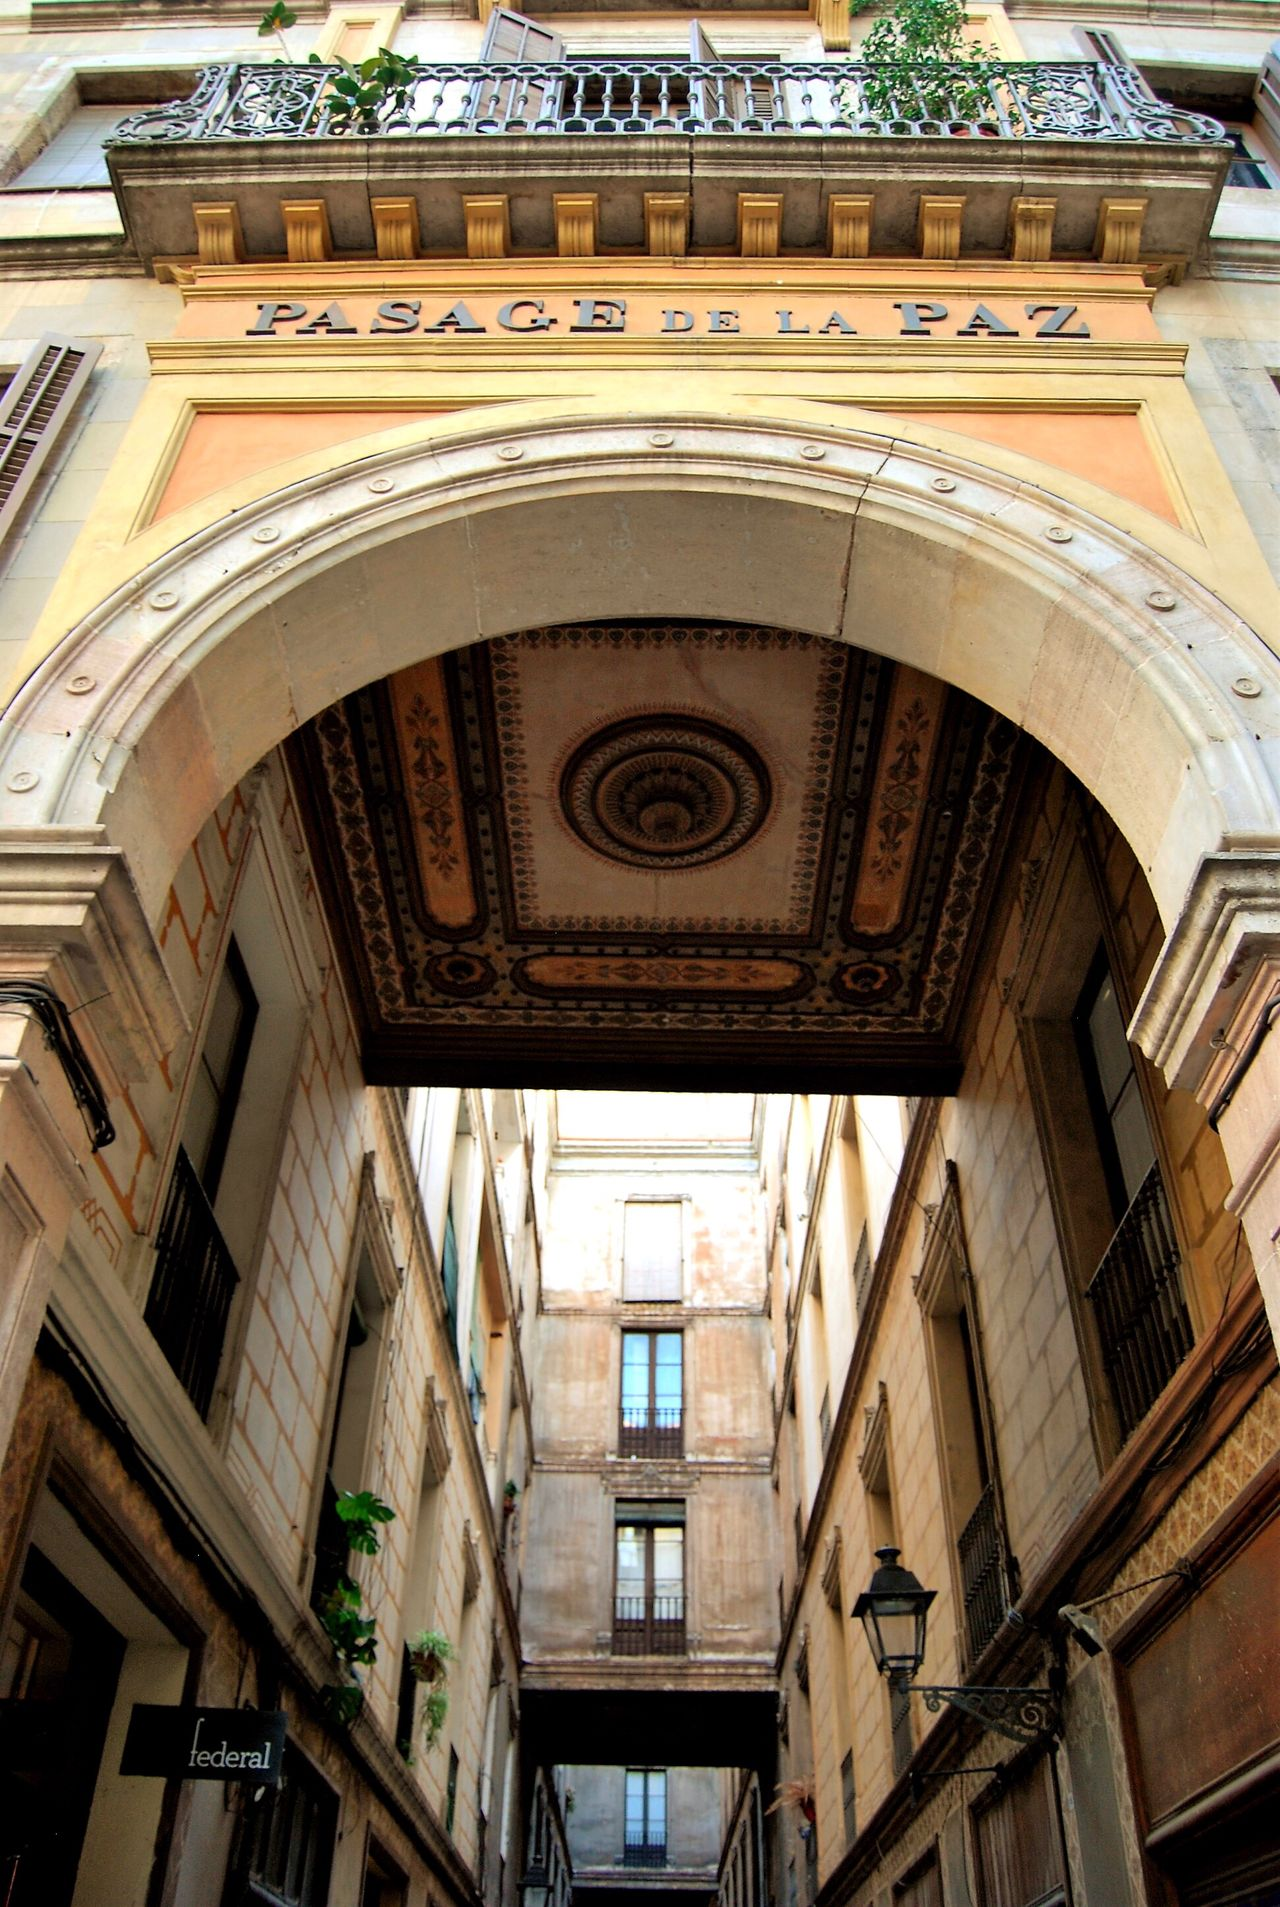 Architecture Built Structure Arch Building Exterior Day No People Outdoors EyeEm Gallery From My Point Of View Perspective Barcelona Old Buildings Cityscapes Architecture Low Angle View